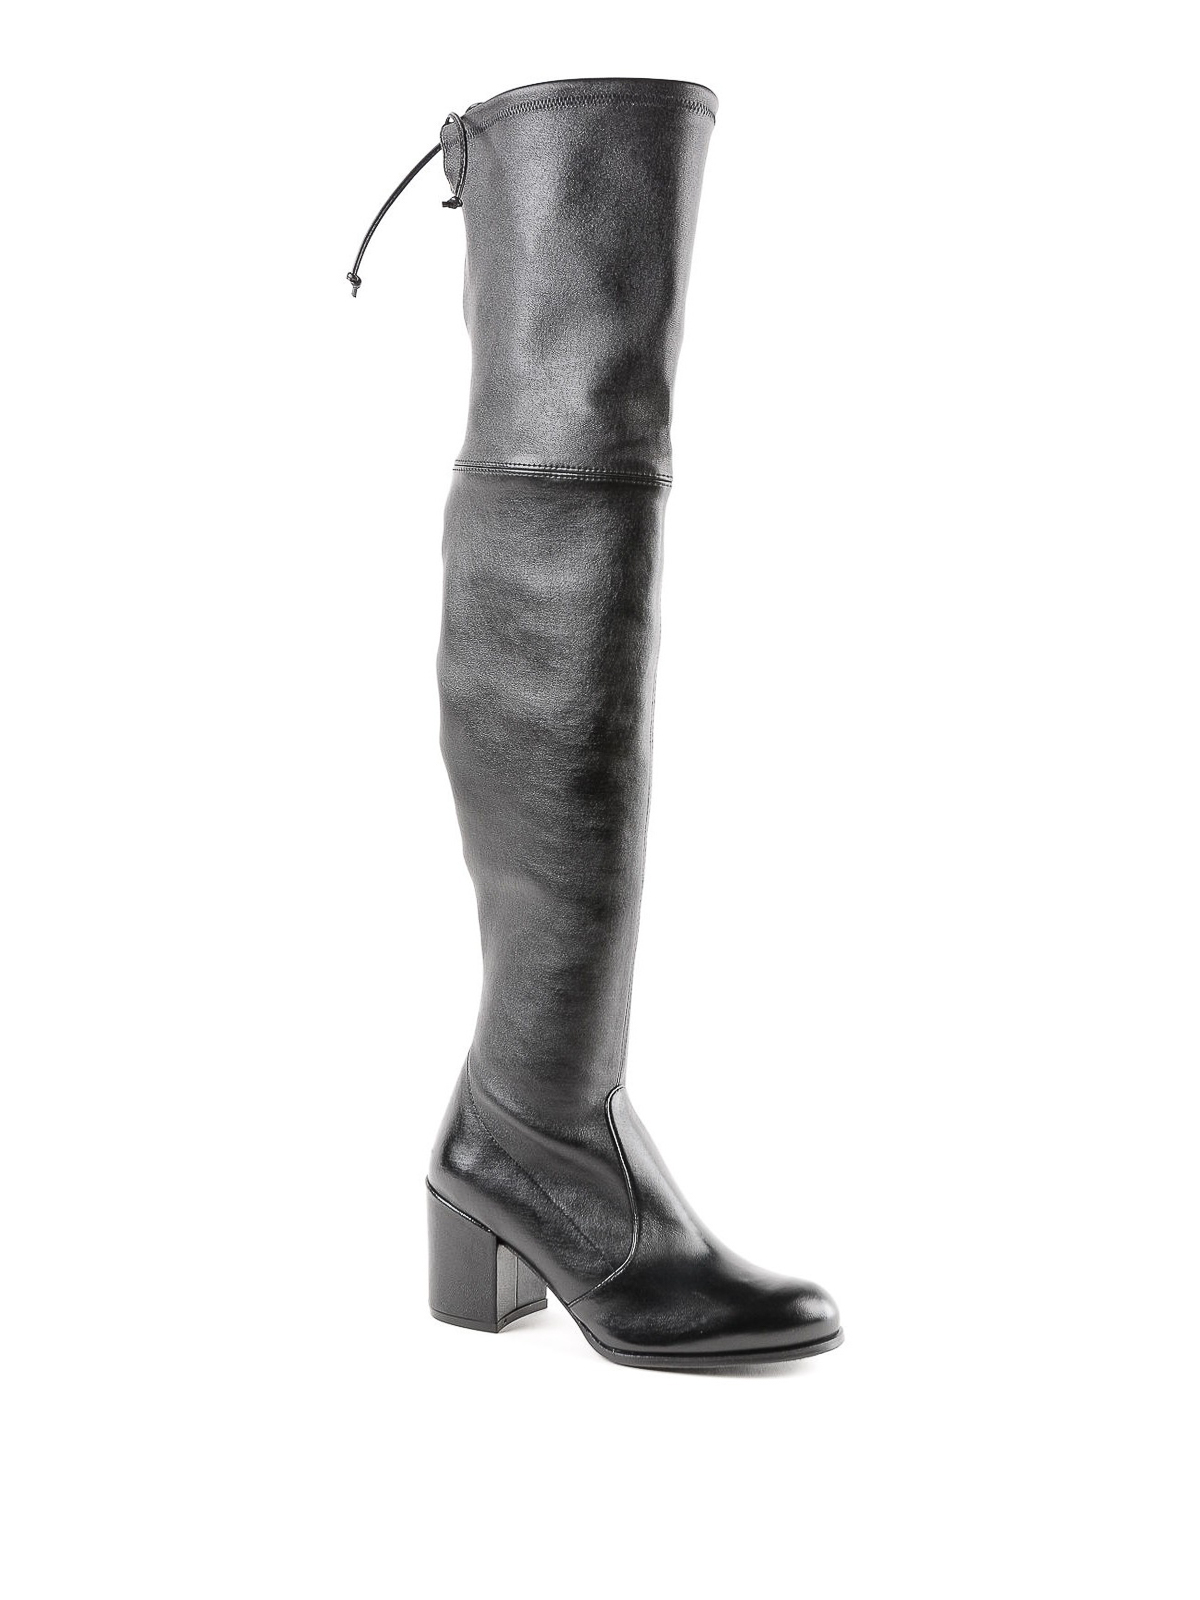 64d8a976715 Stuart Weitzman  boots online - Tieland stretch nappa over the knee boots